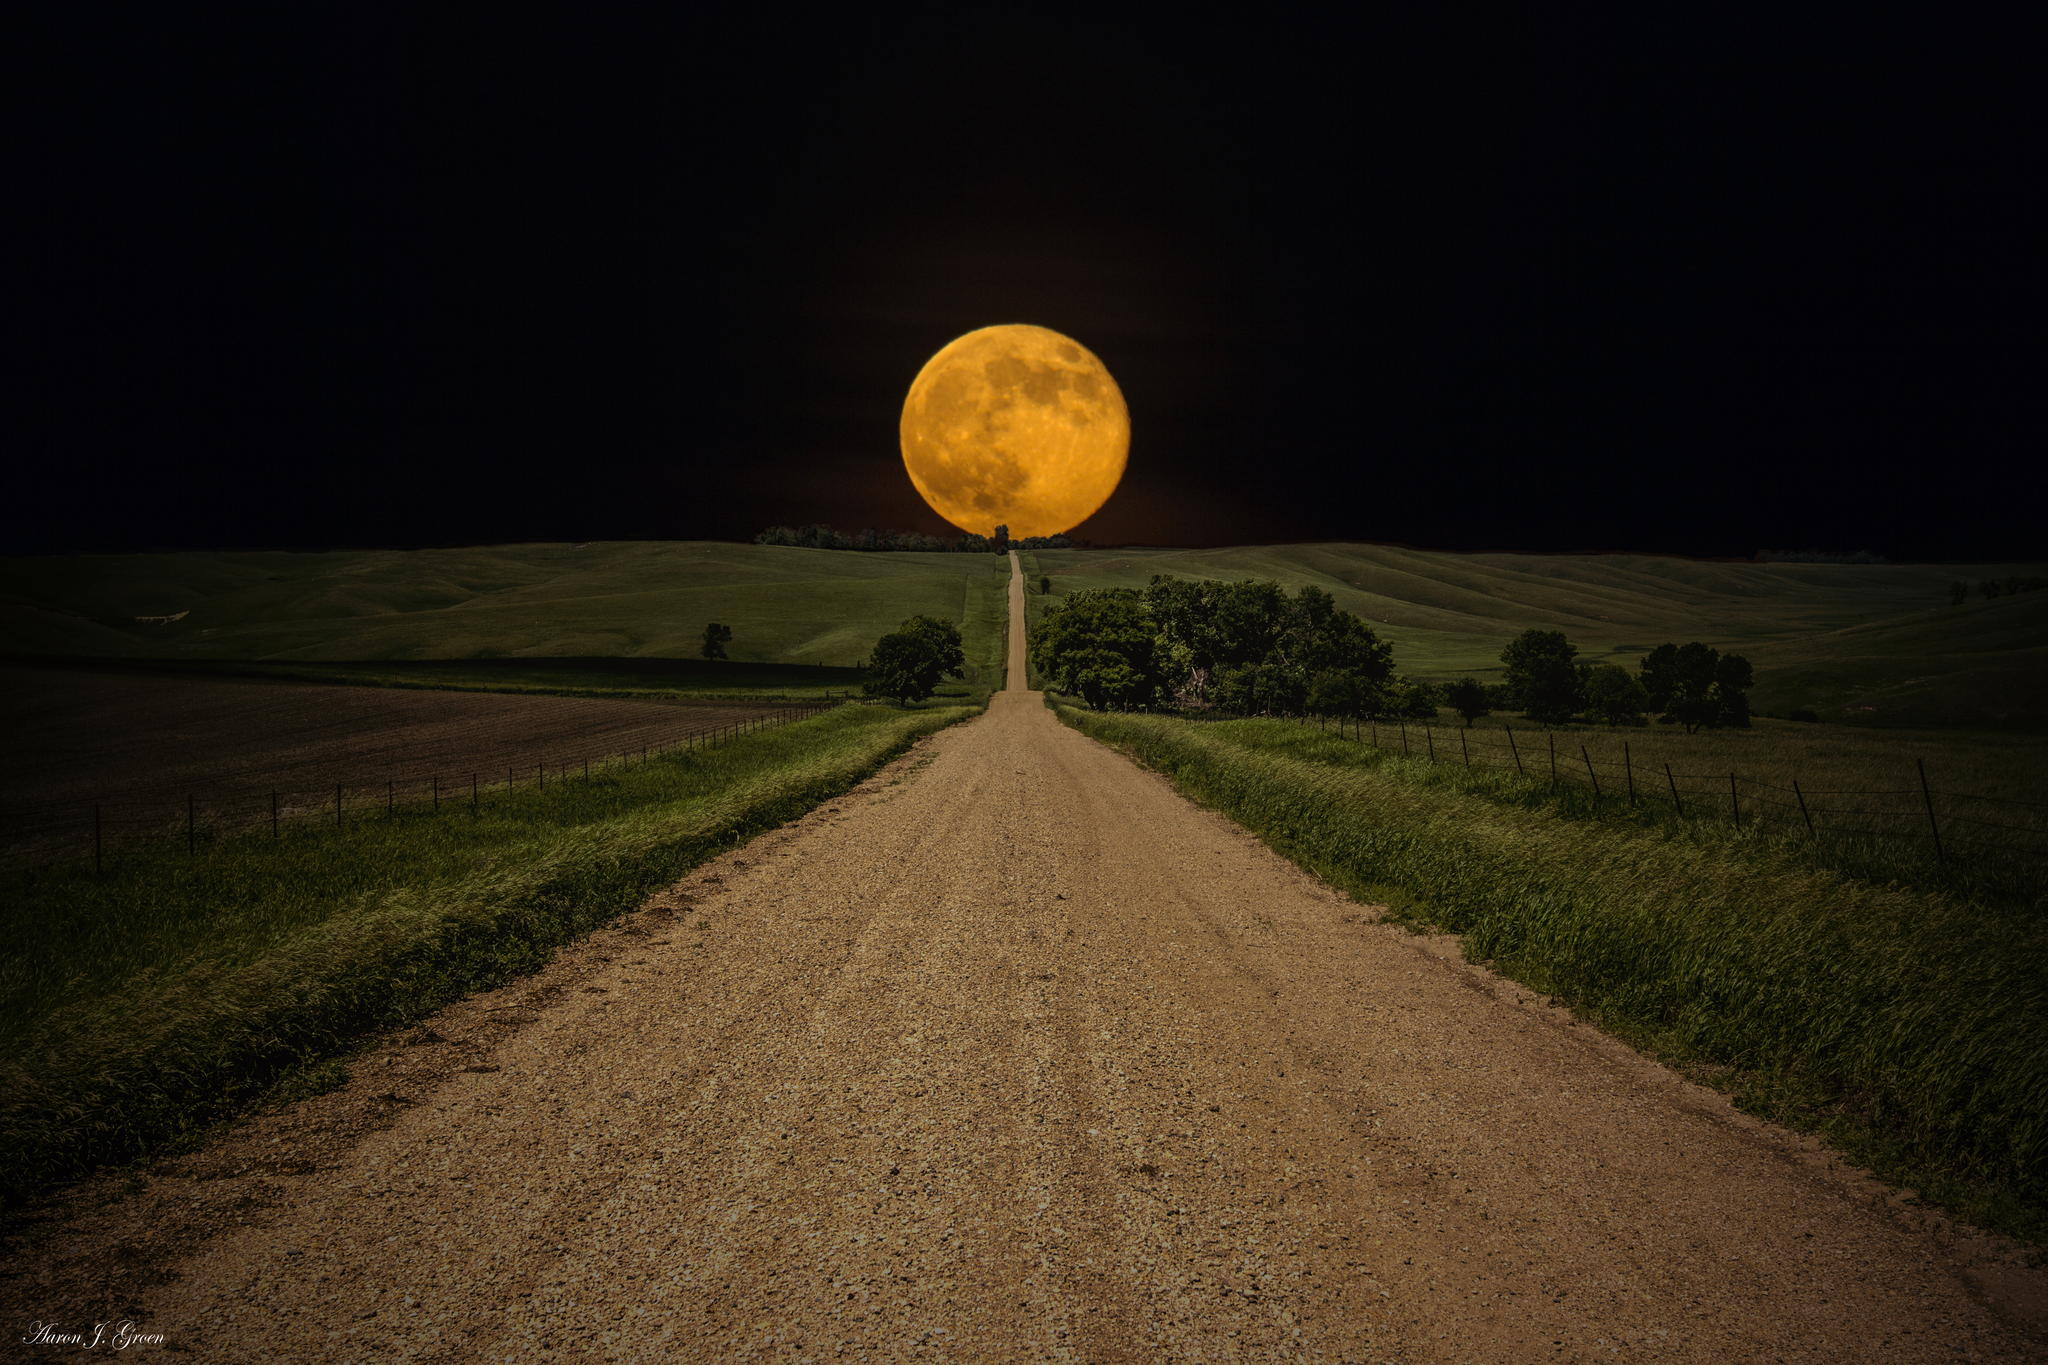 Road to nowhere?